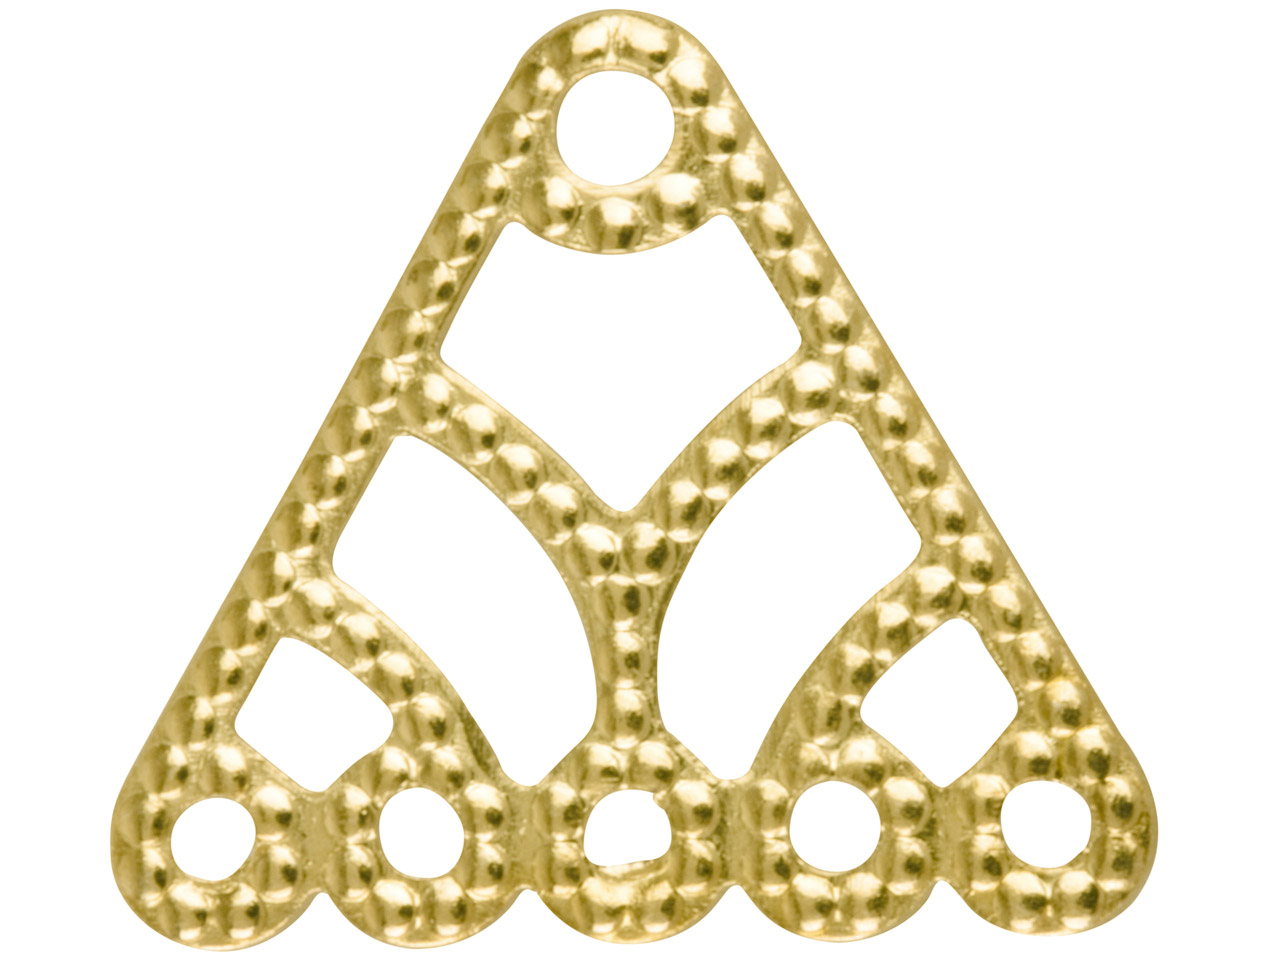 Gold Plated 5 Hole Triangle Dropper Pack of 10